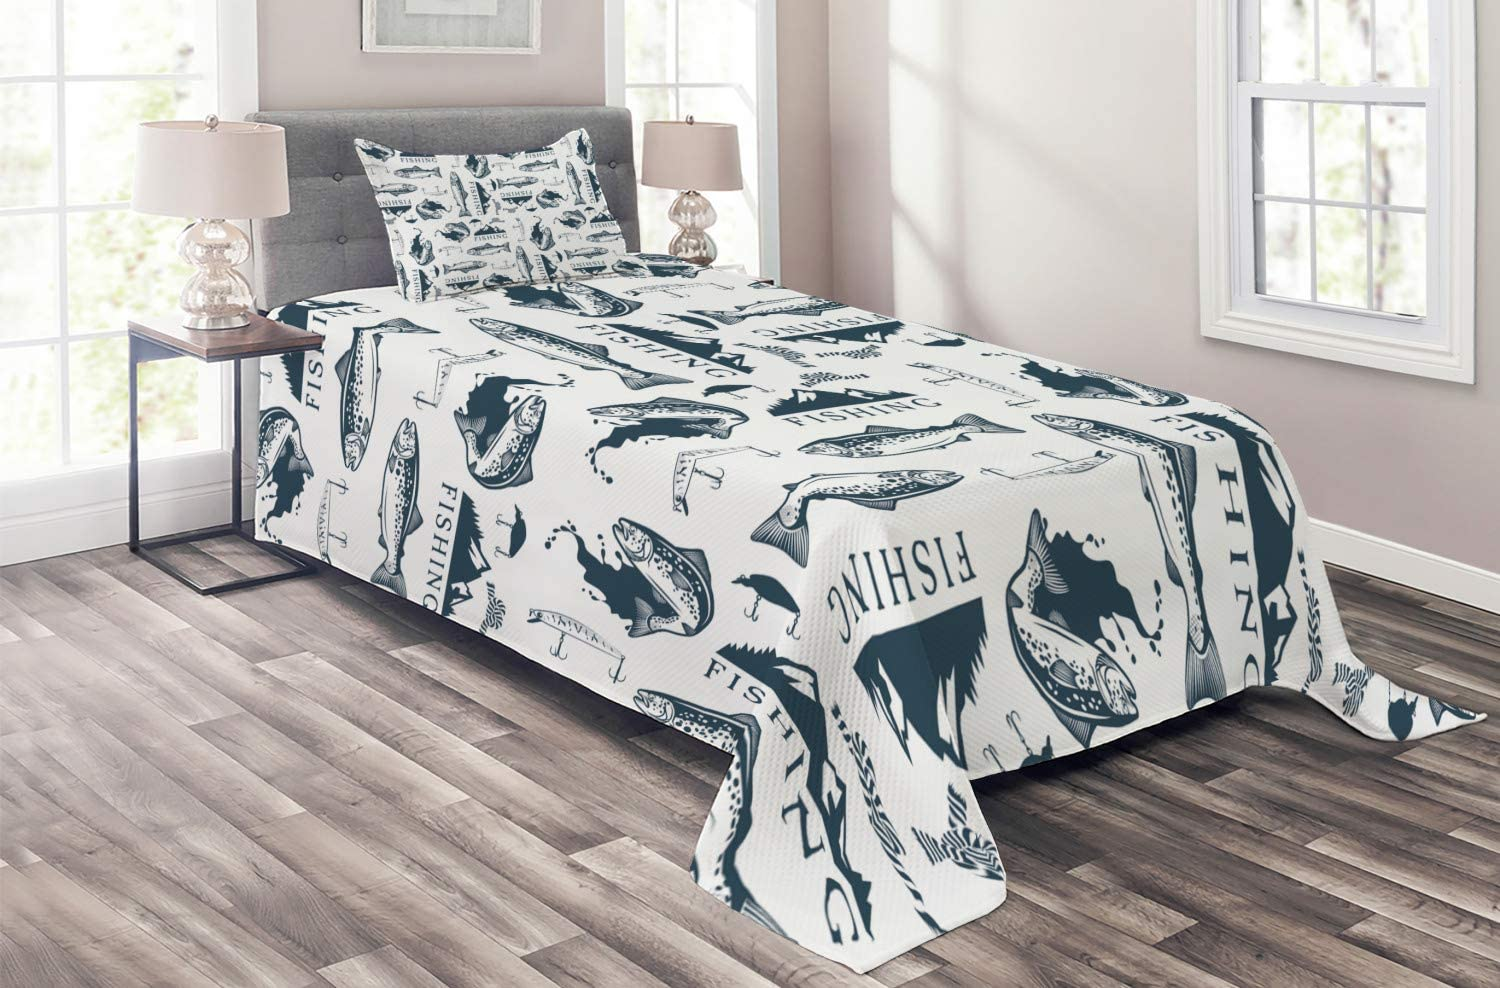 Lunarable Trout Coverlet, Trout Emblems Pattern Retro Style Marine Ropes Fishing Lures Mountains, 2 Piece Decorative Quilted Bedspread Set with 1 Pillow Sham, Twin Size, Dark Blue Grey and White